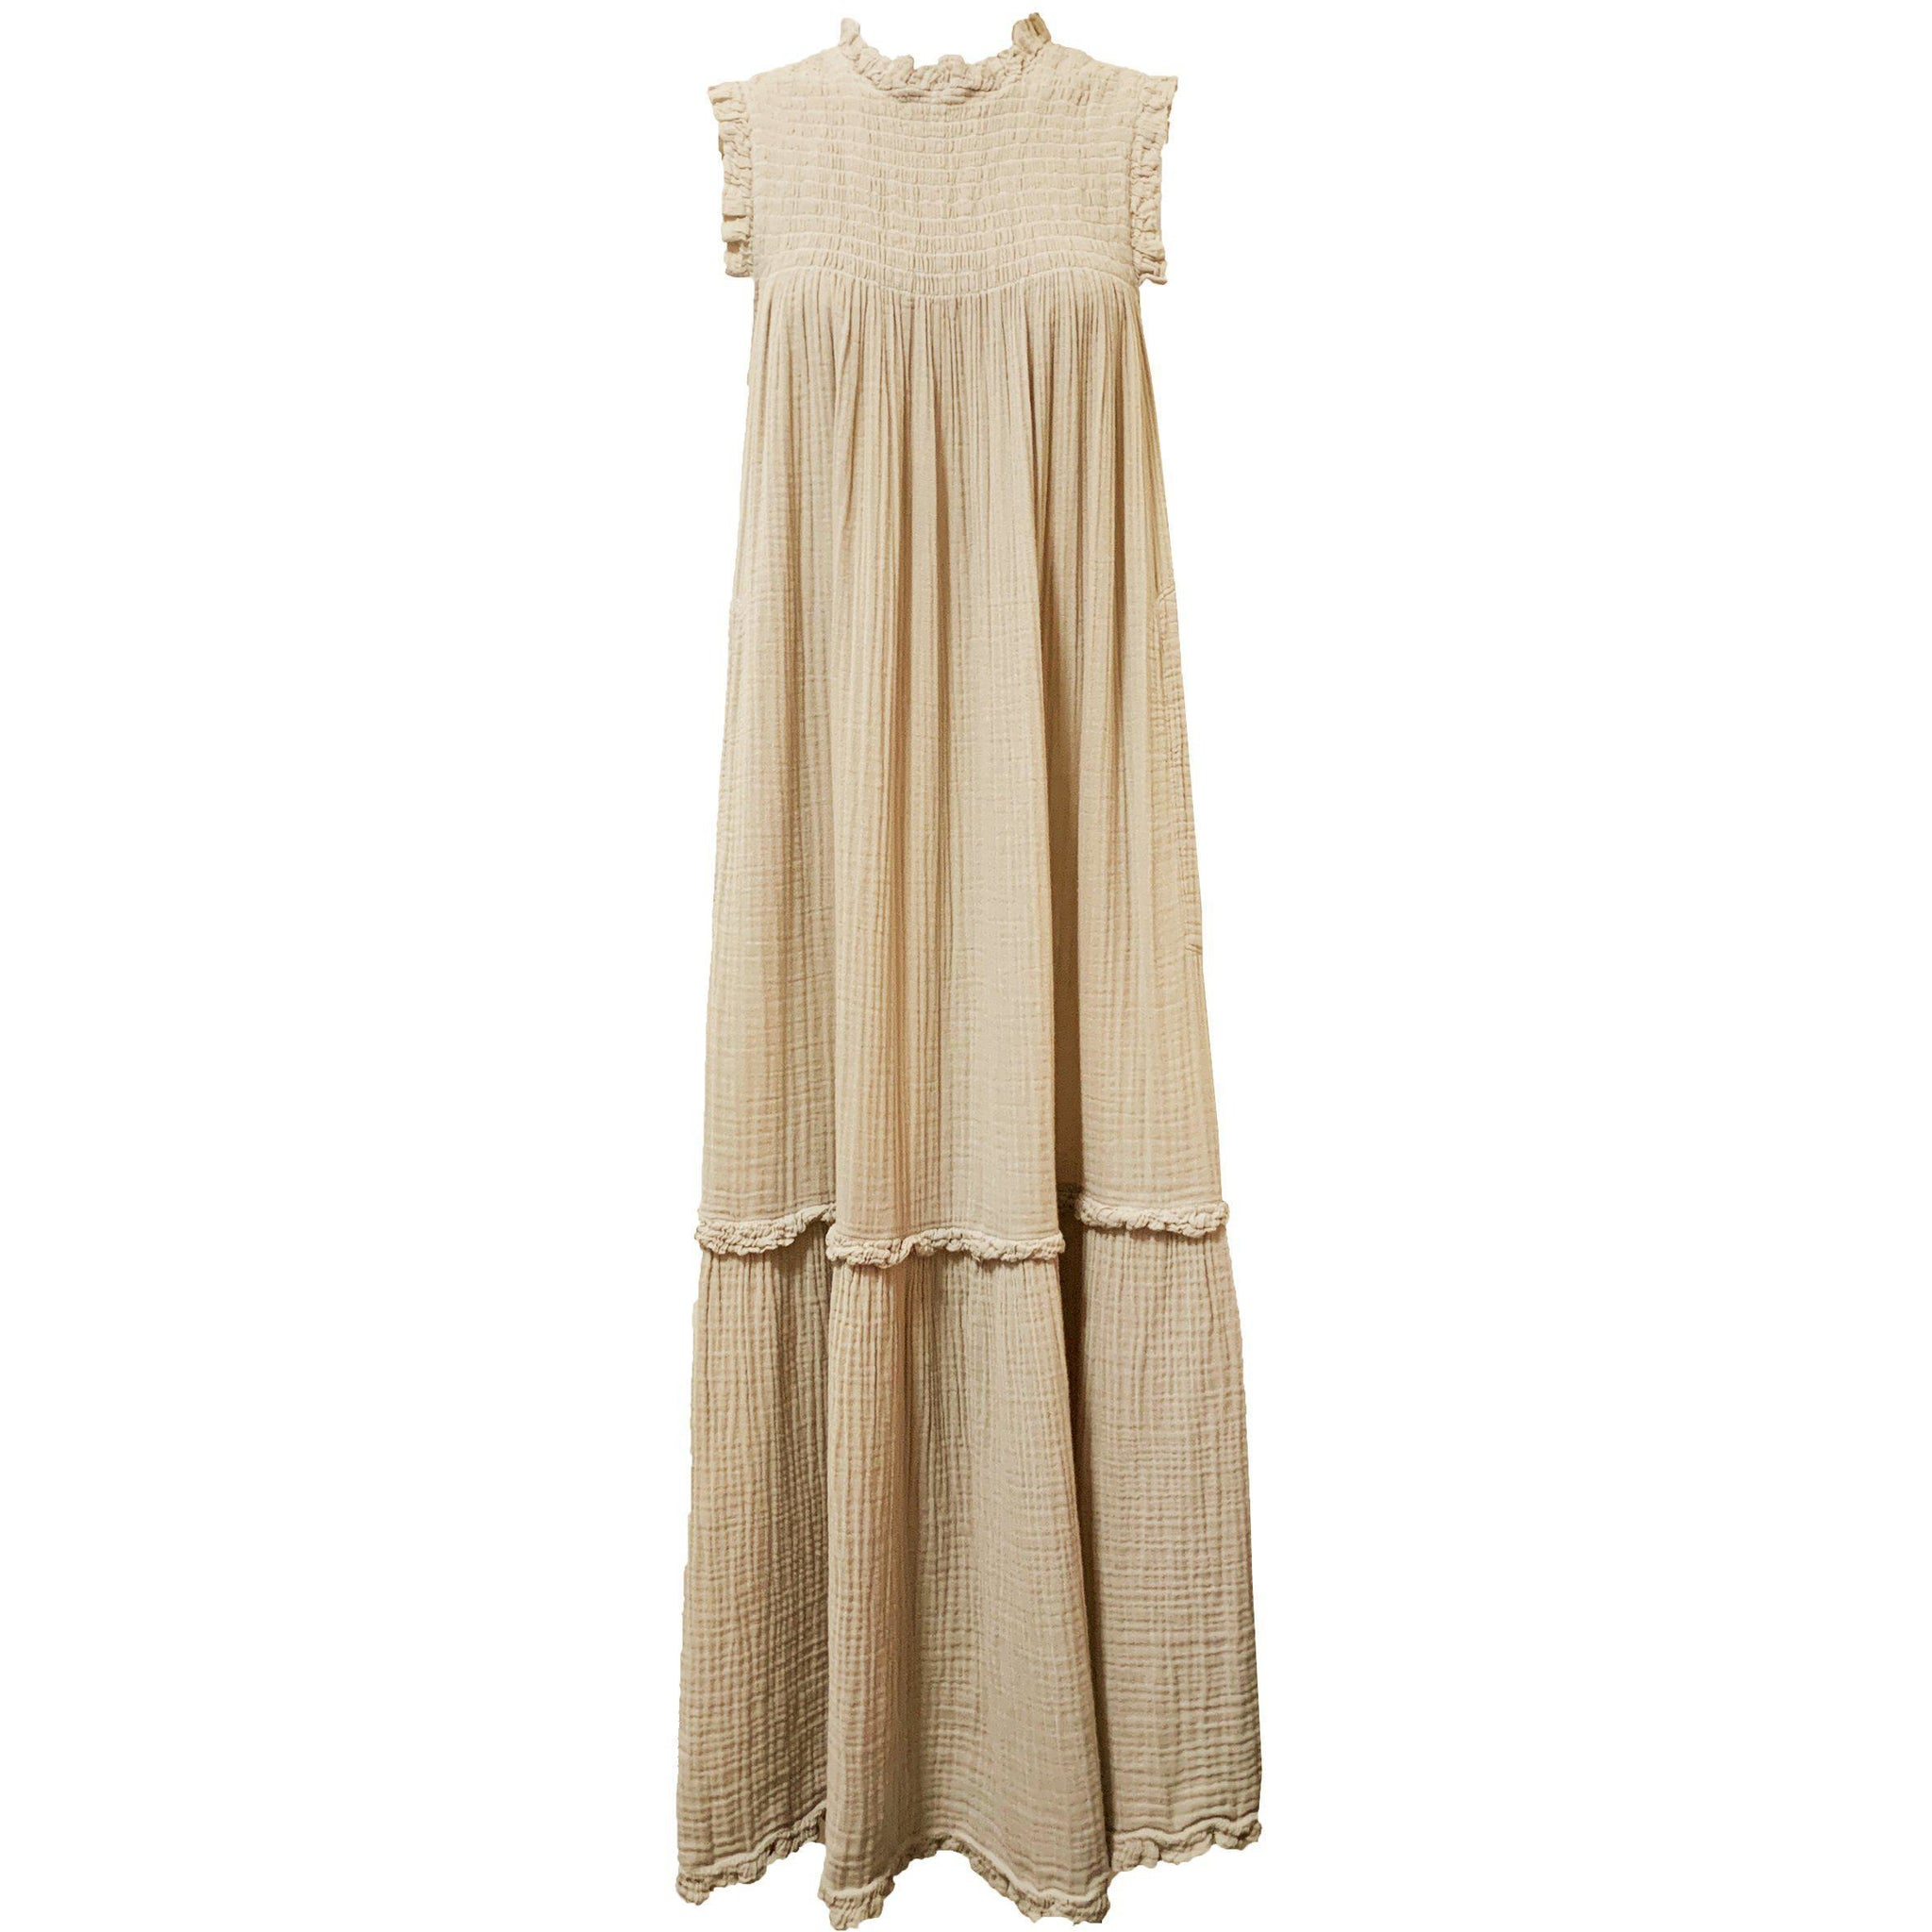 Sand Gauze Medley Smocked Dress